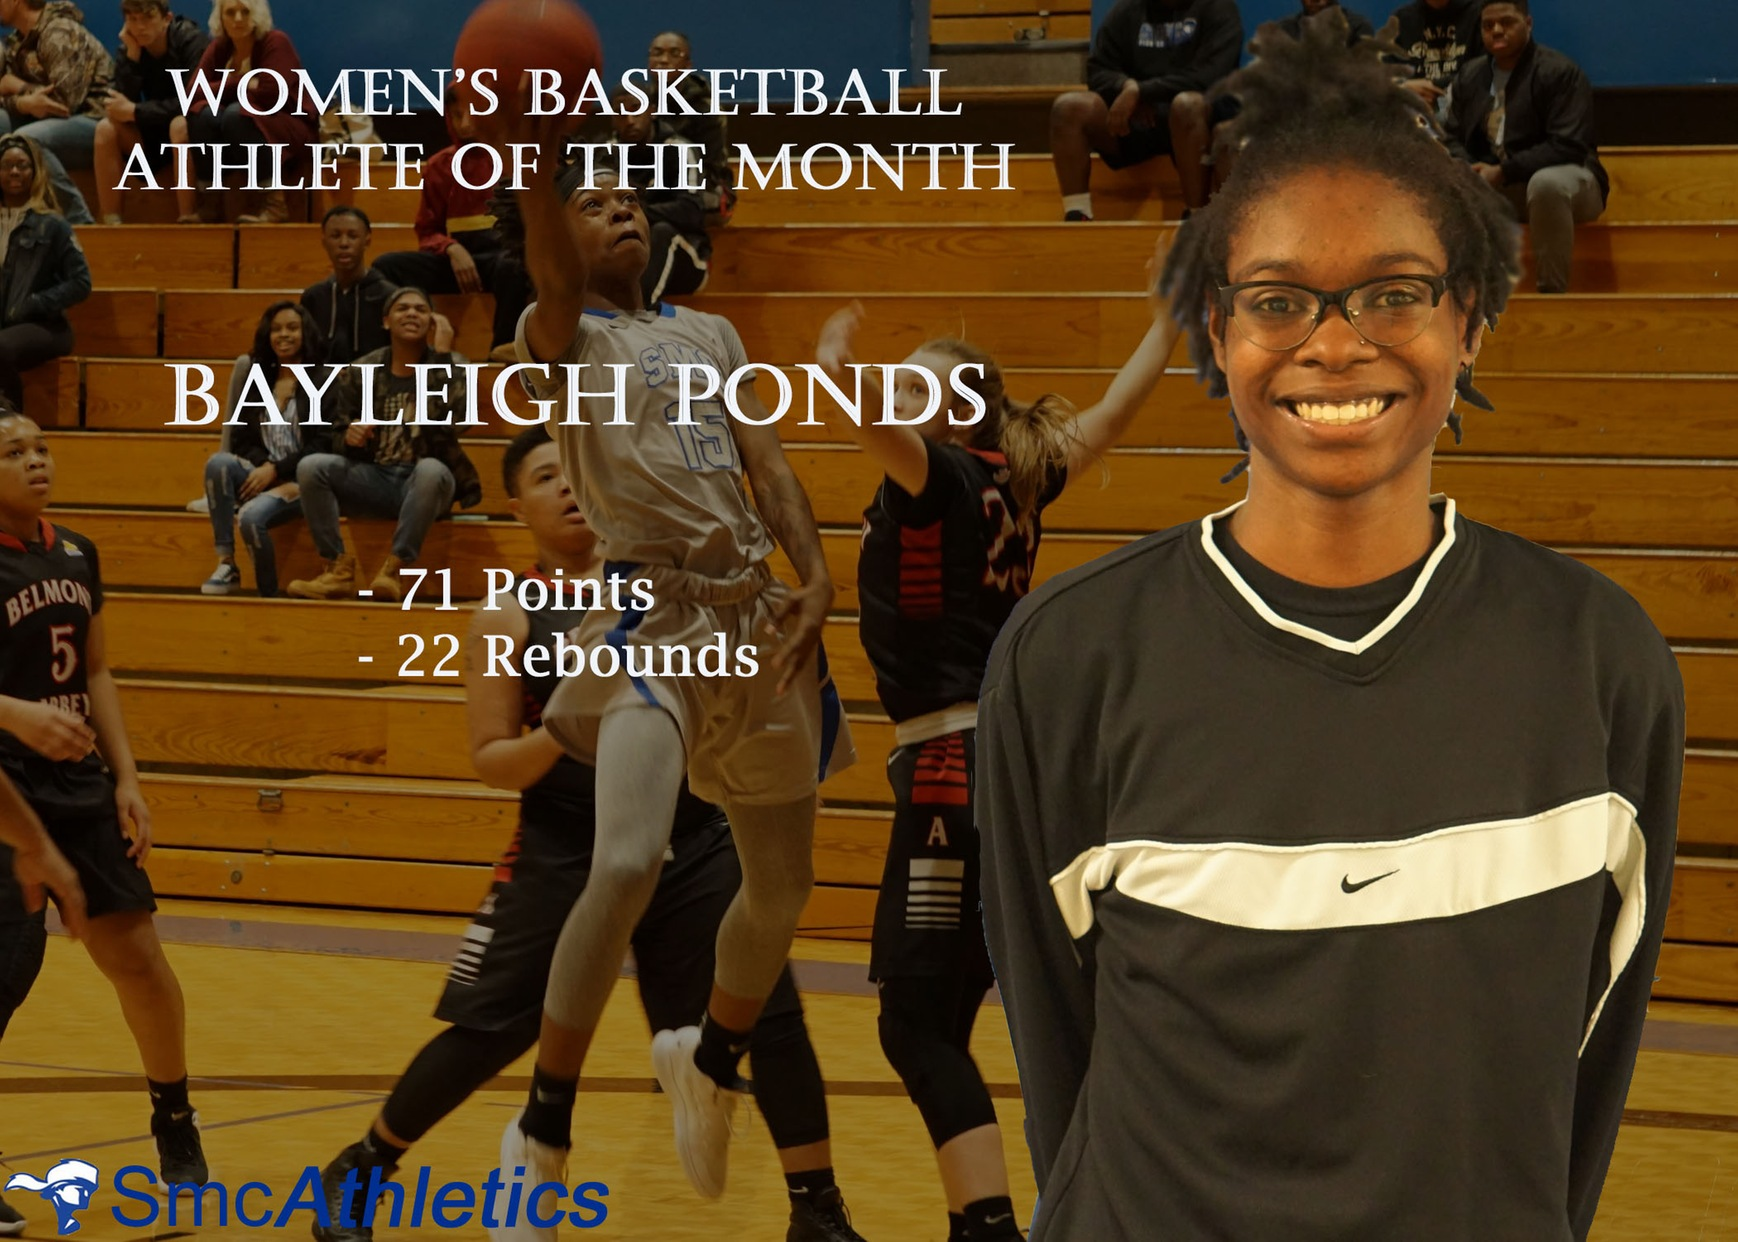 Women's Basketball Athlete of the Month